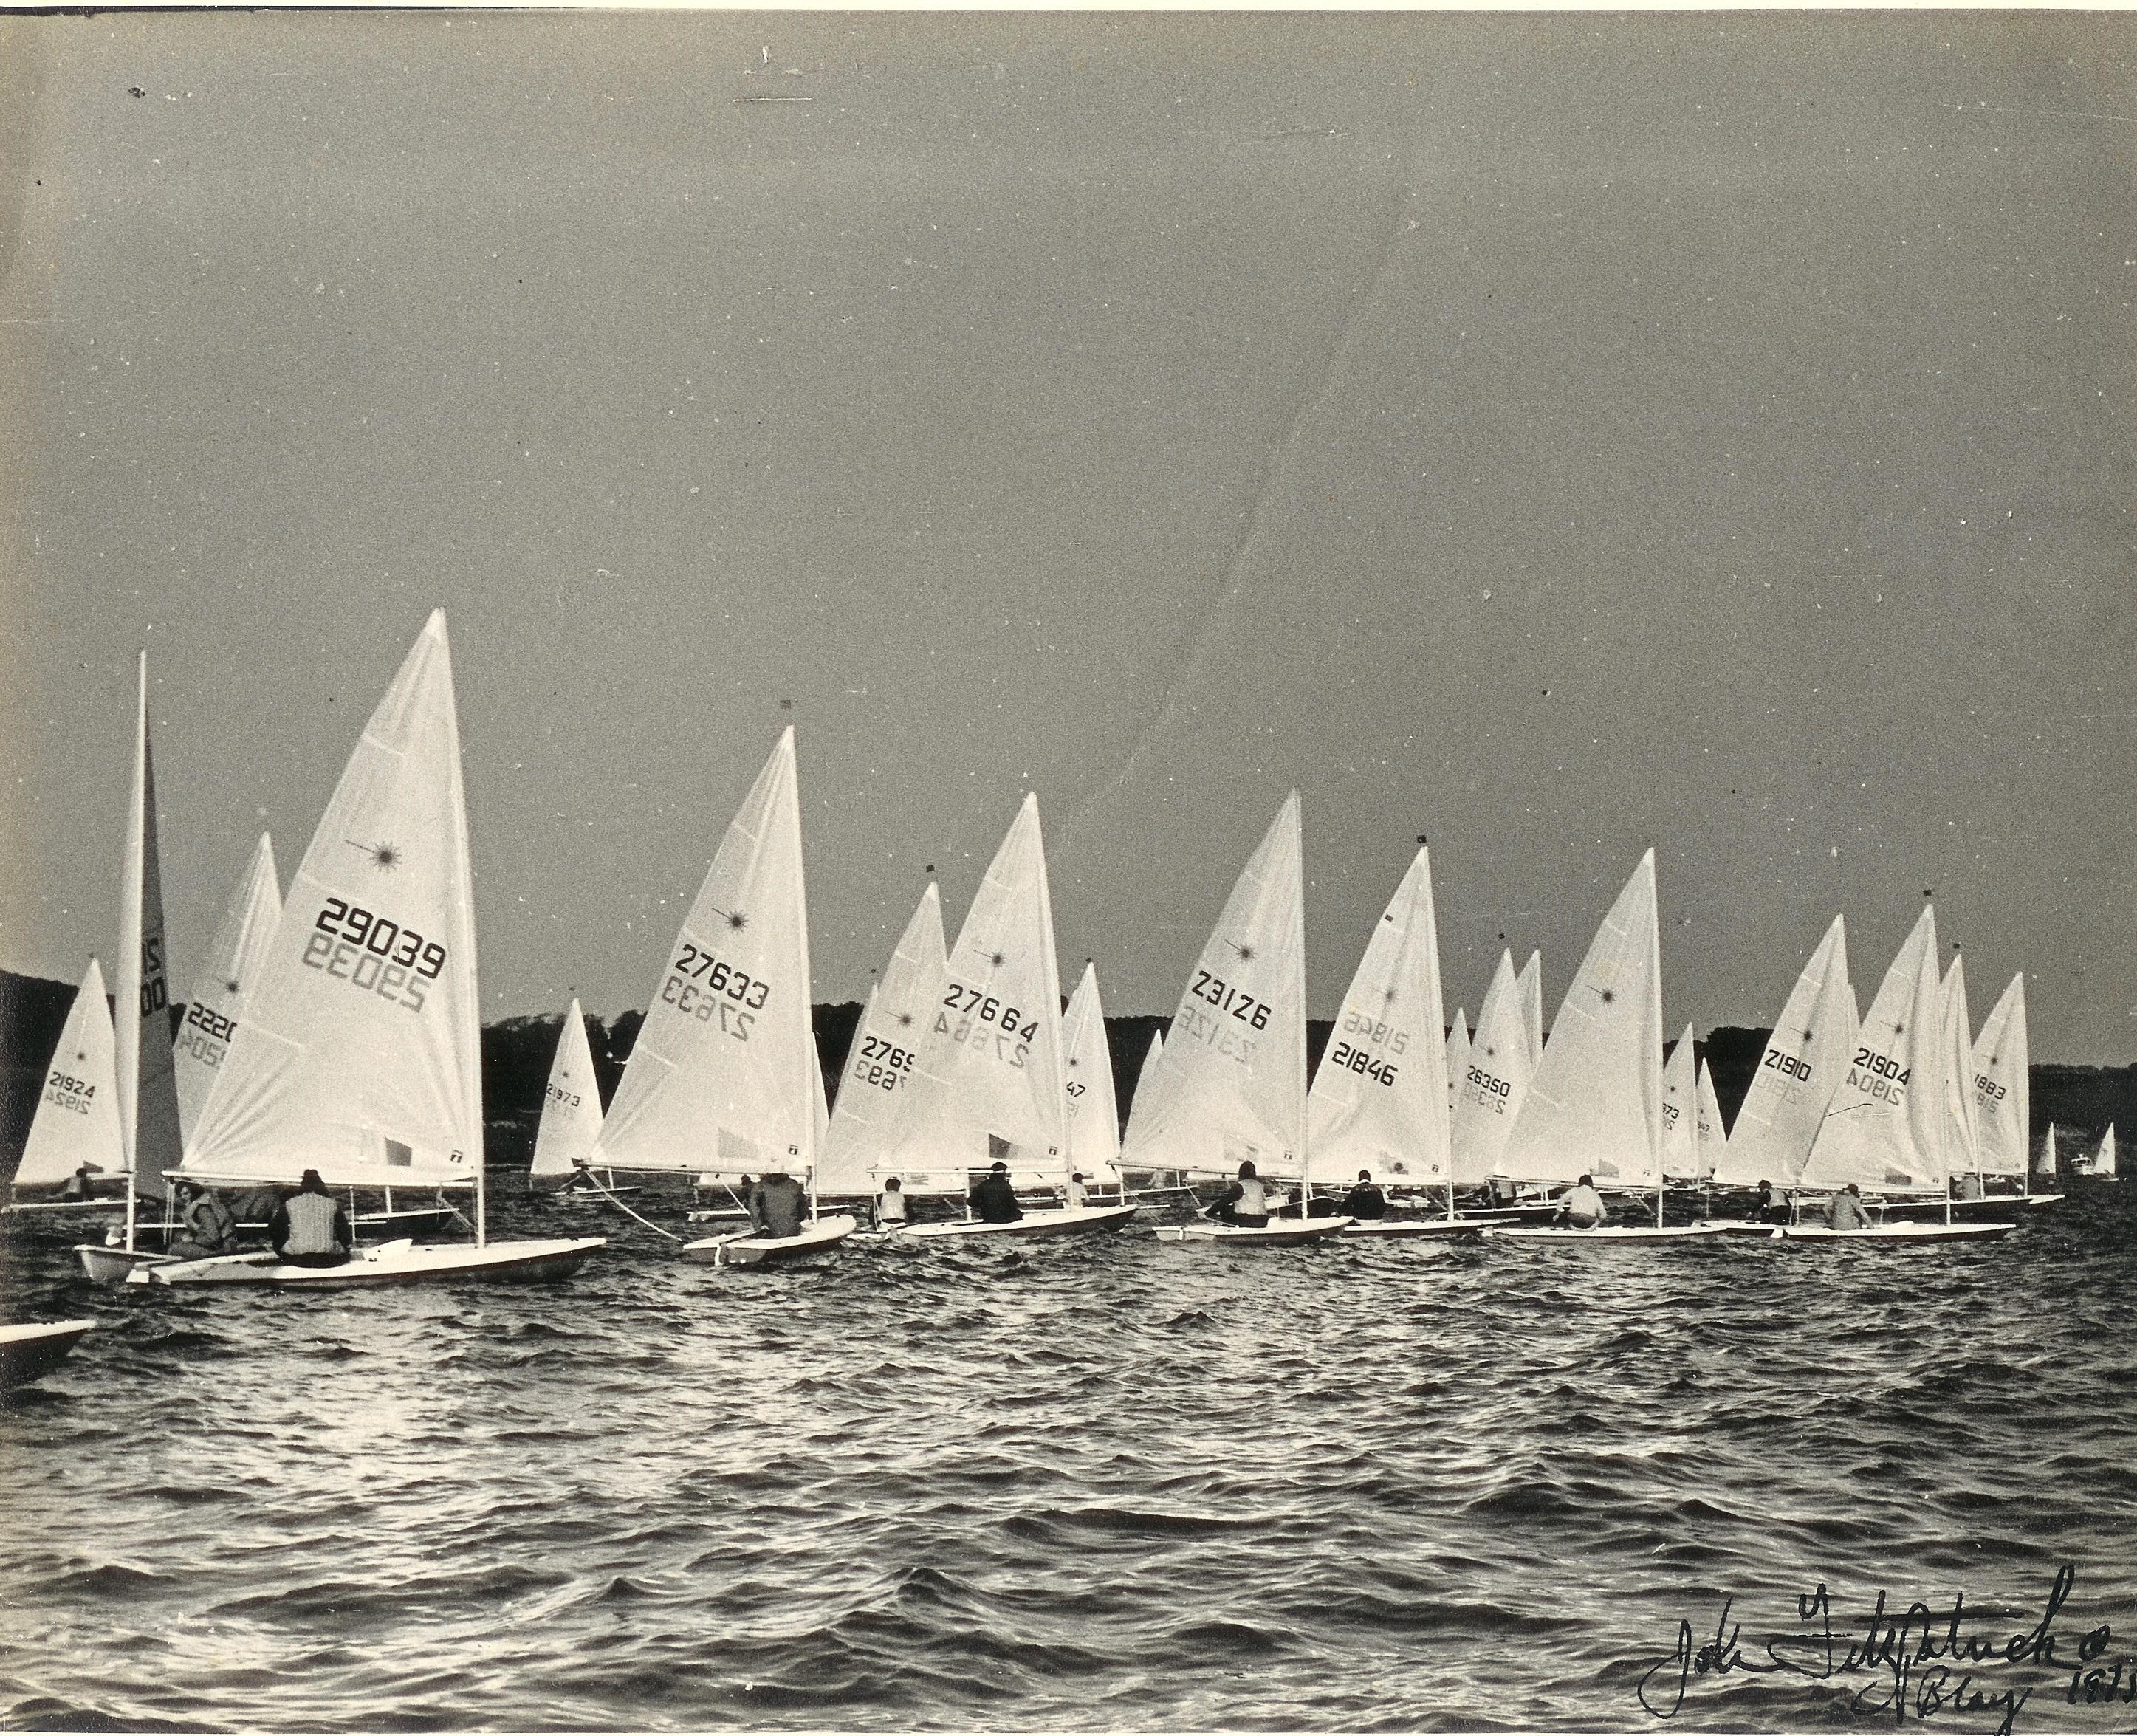 Laser Nationals 1975